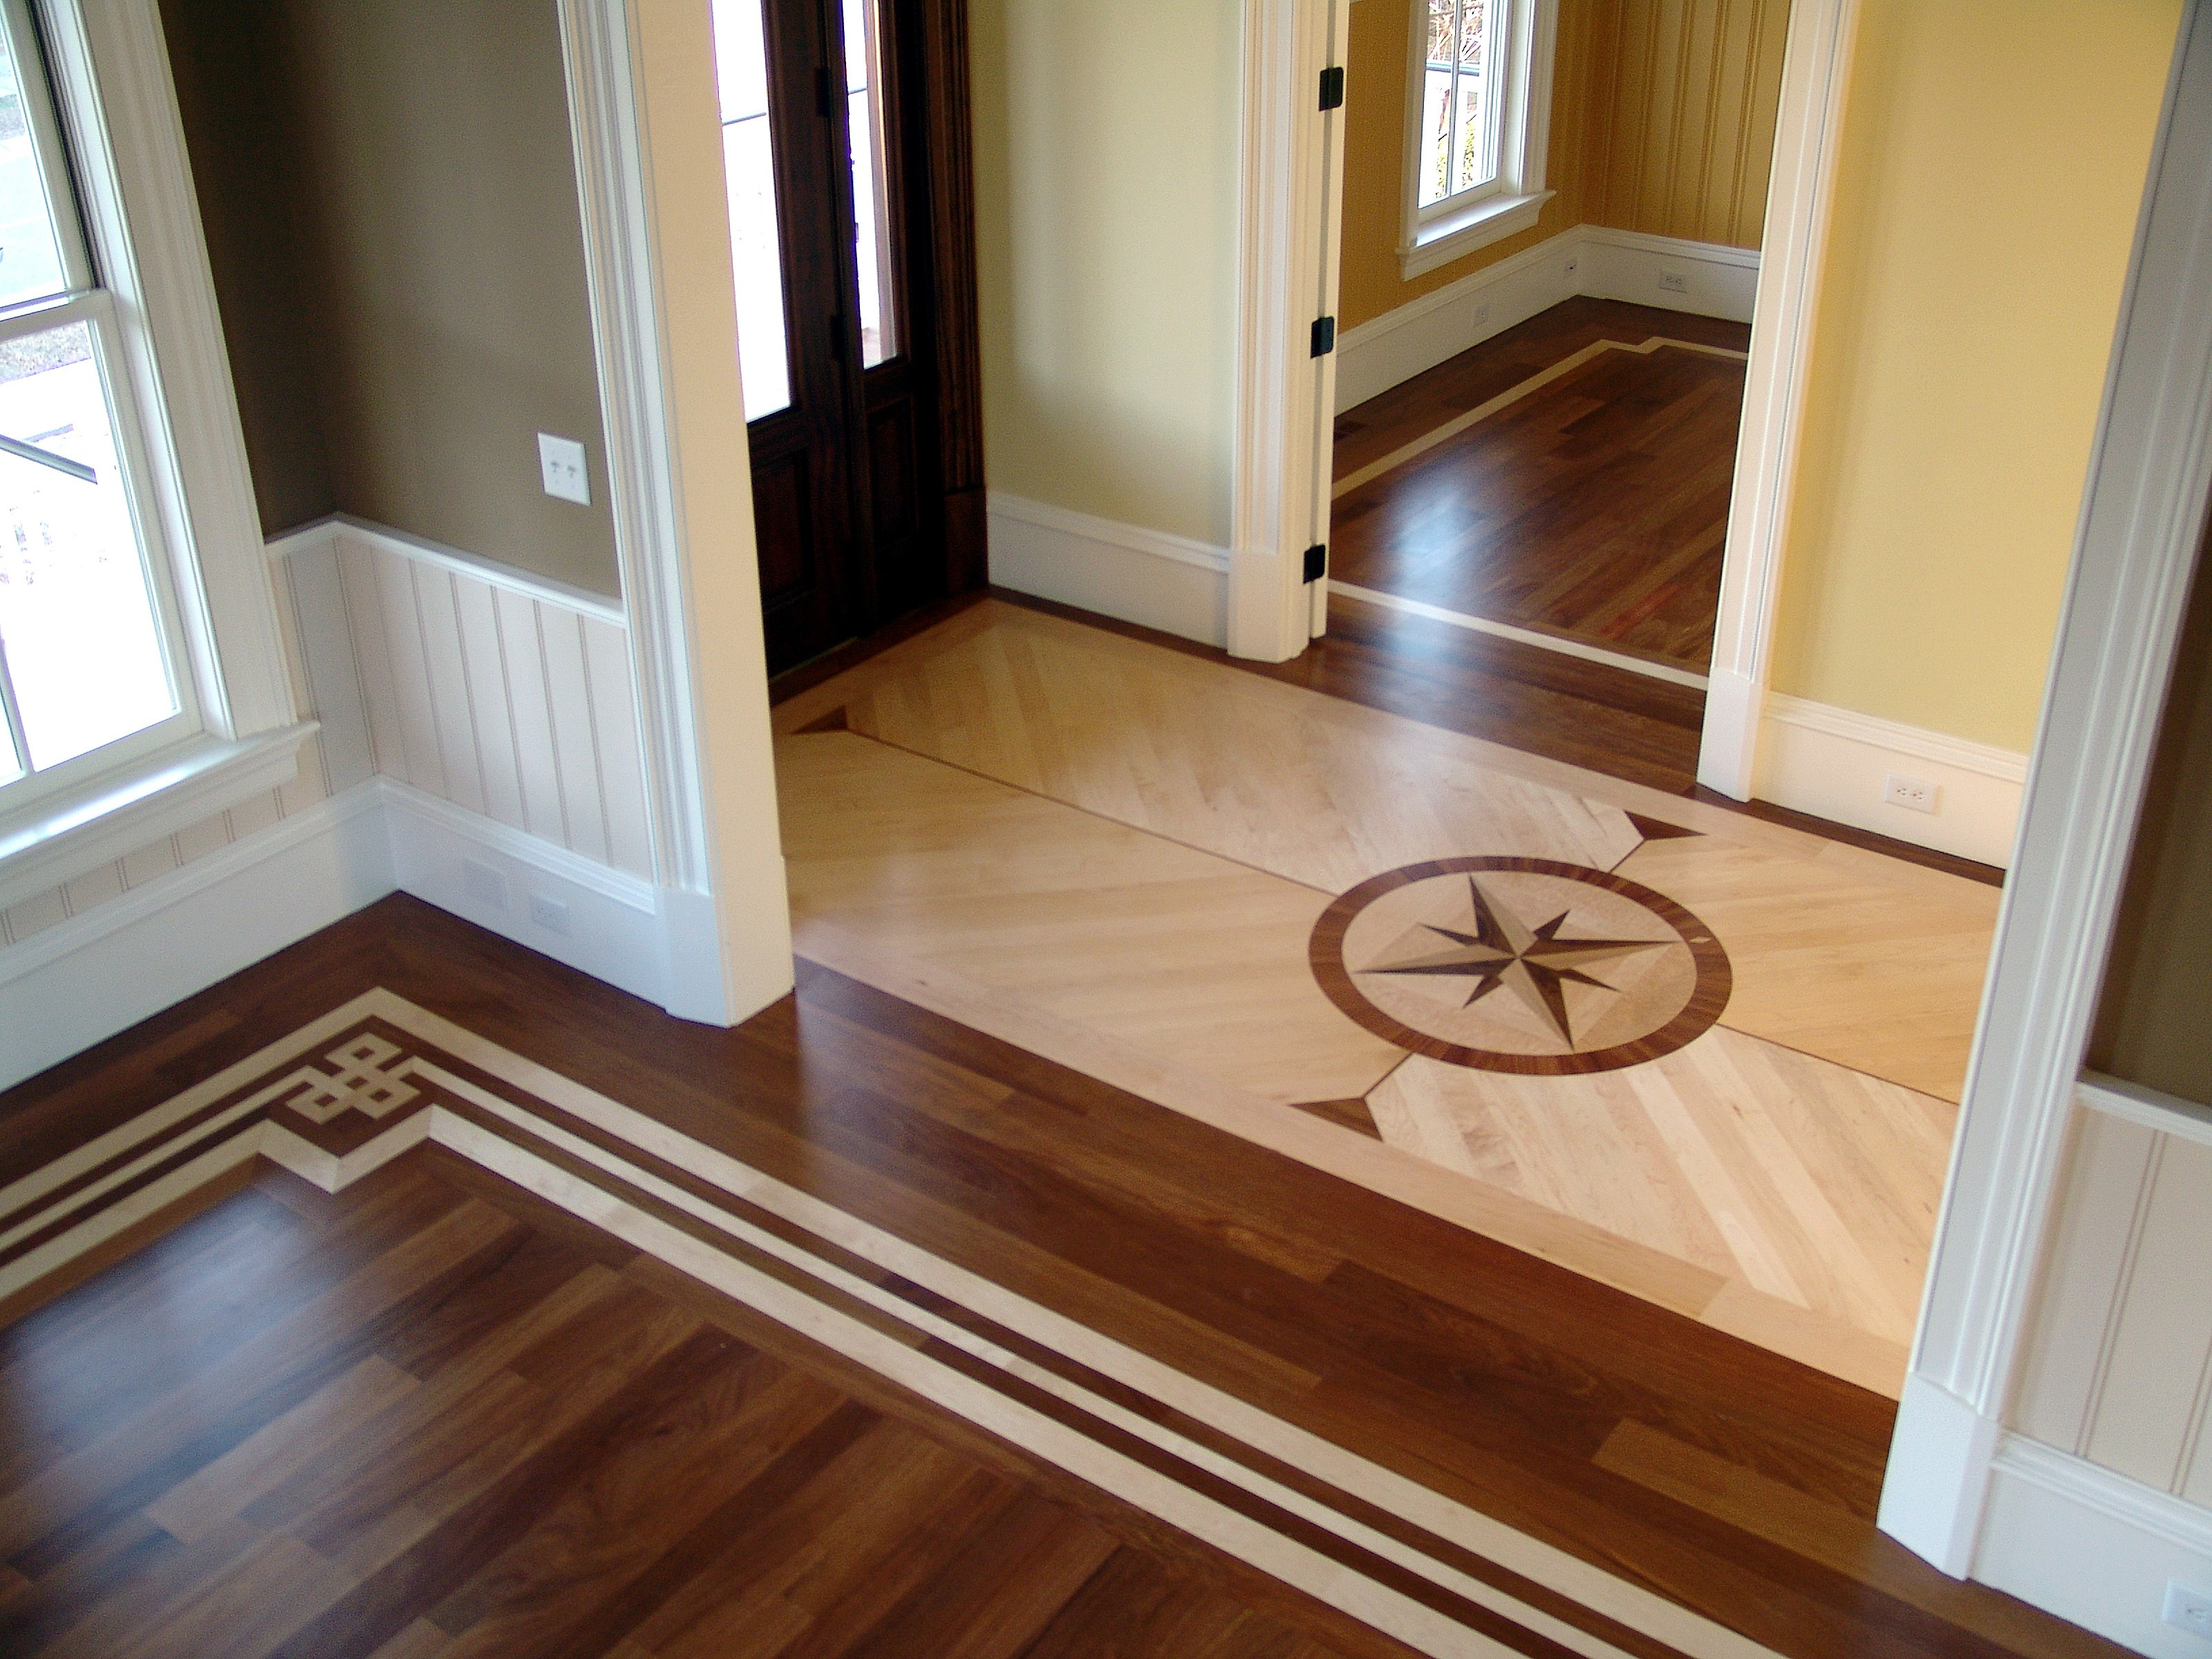 american hardwood floors company of imperial wood floors madison wi hardwood floors hardwood floor with home a